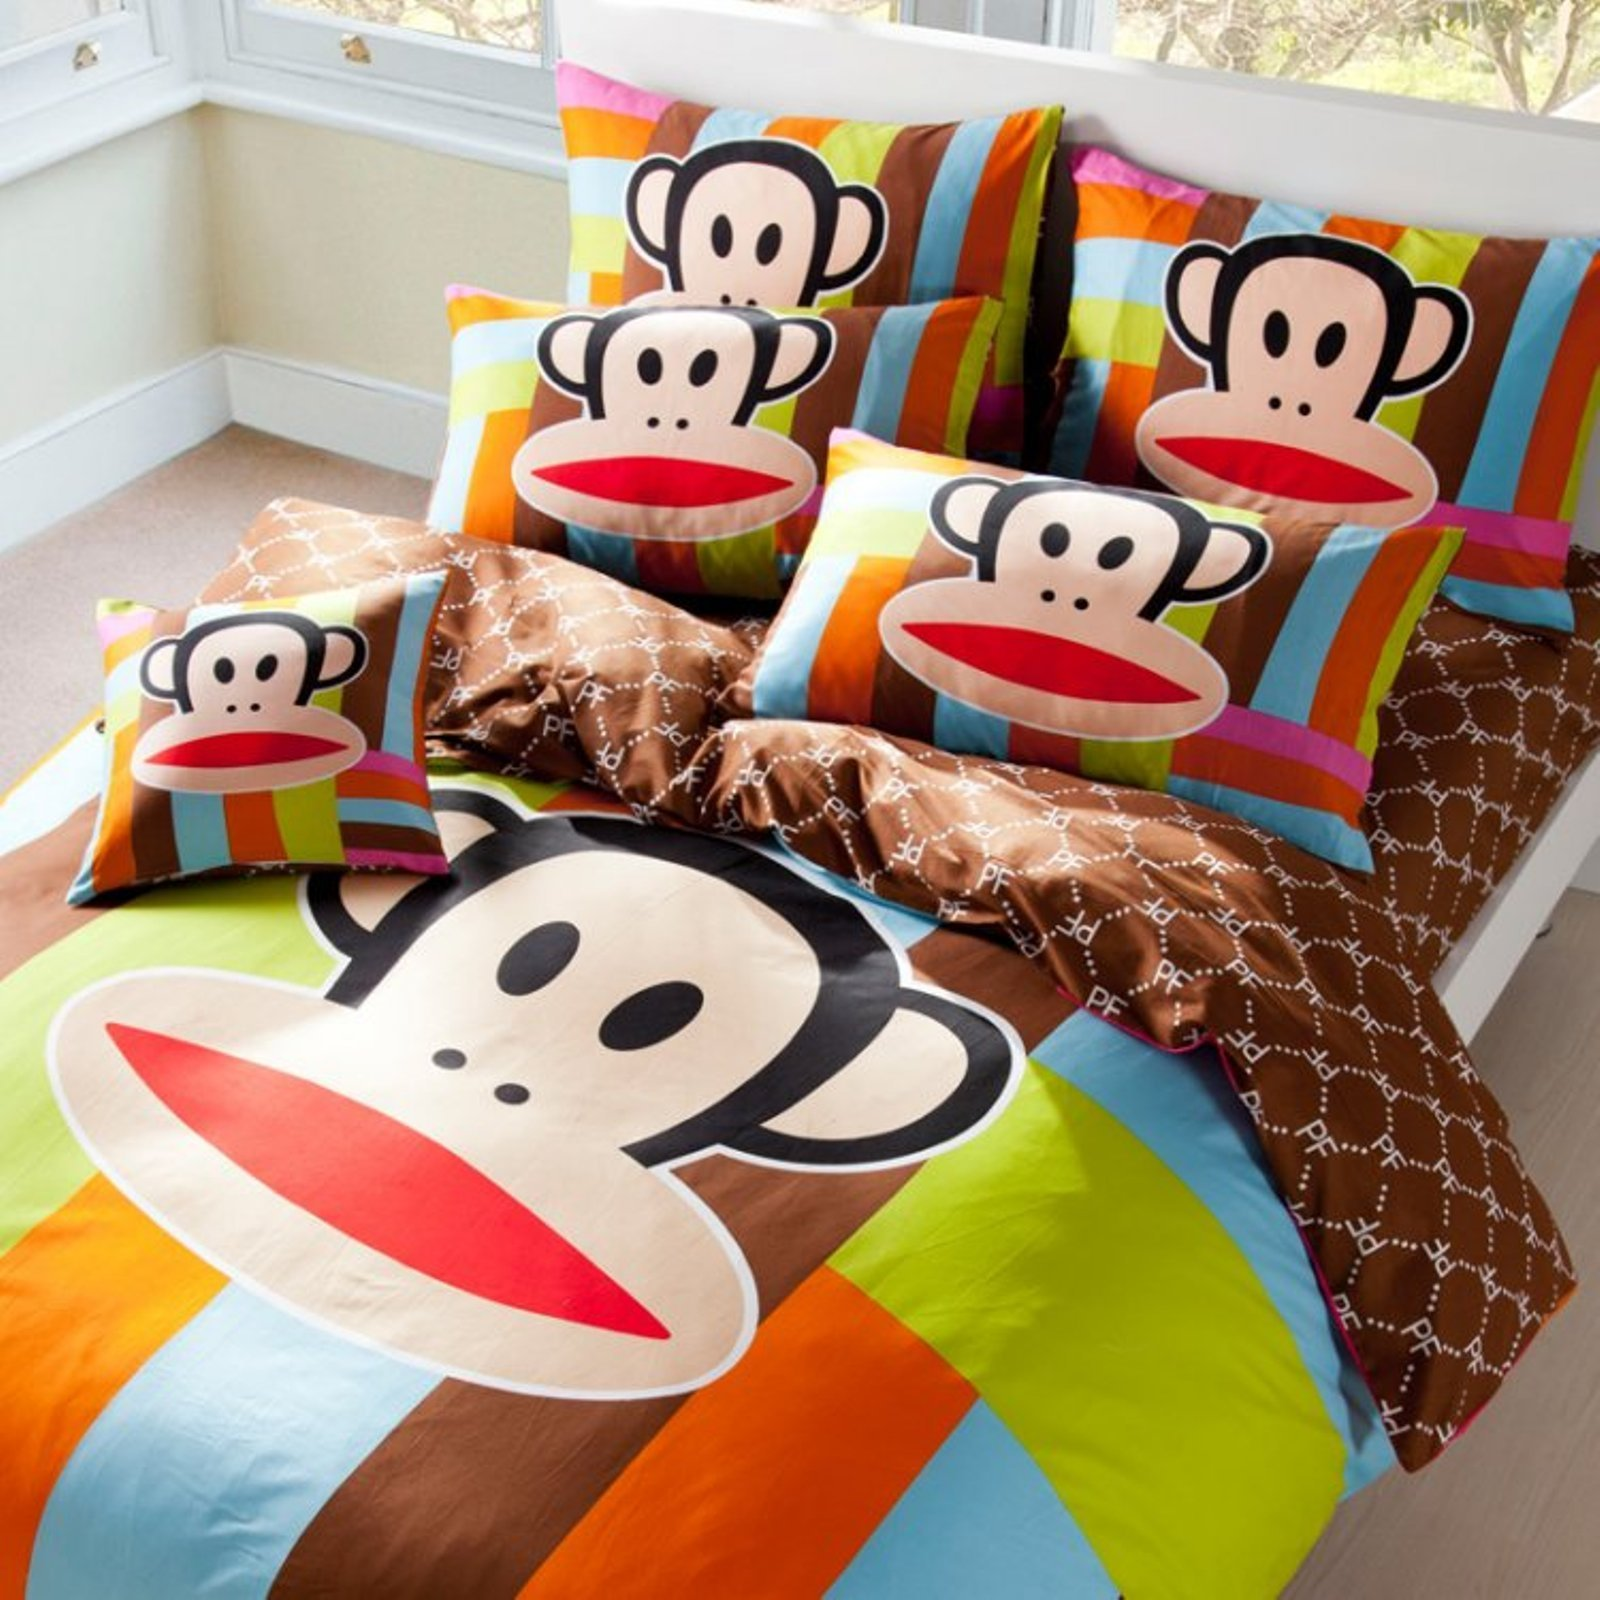 Paul Frank Bedding Sheet, Quilt, Pillowcase